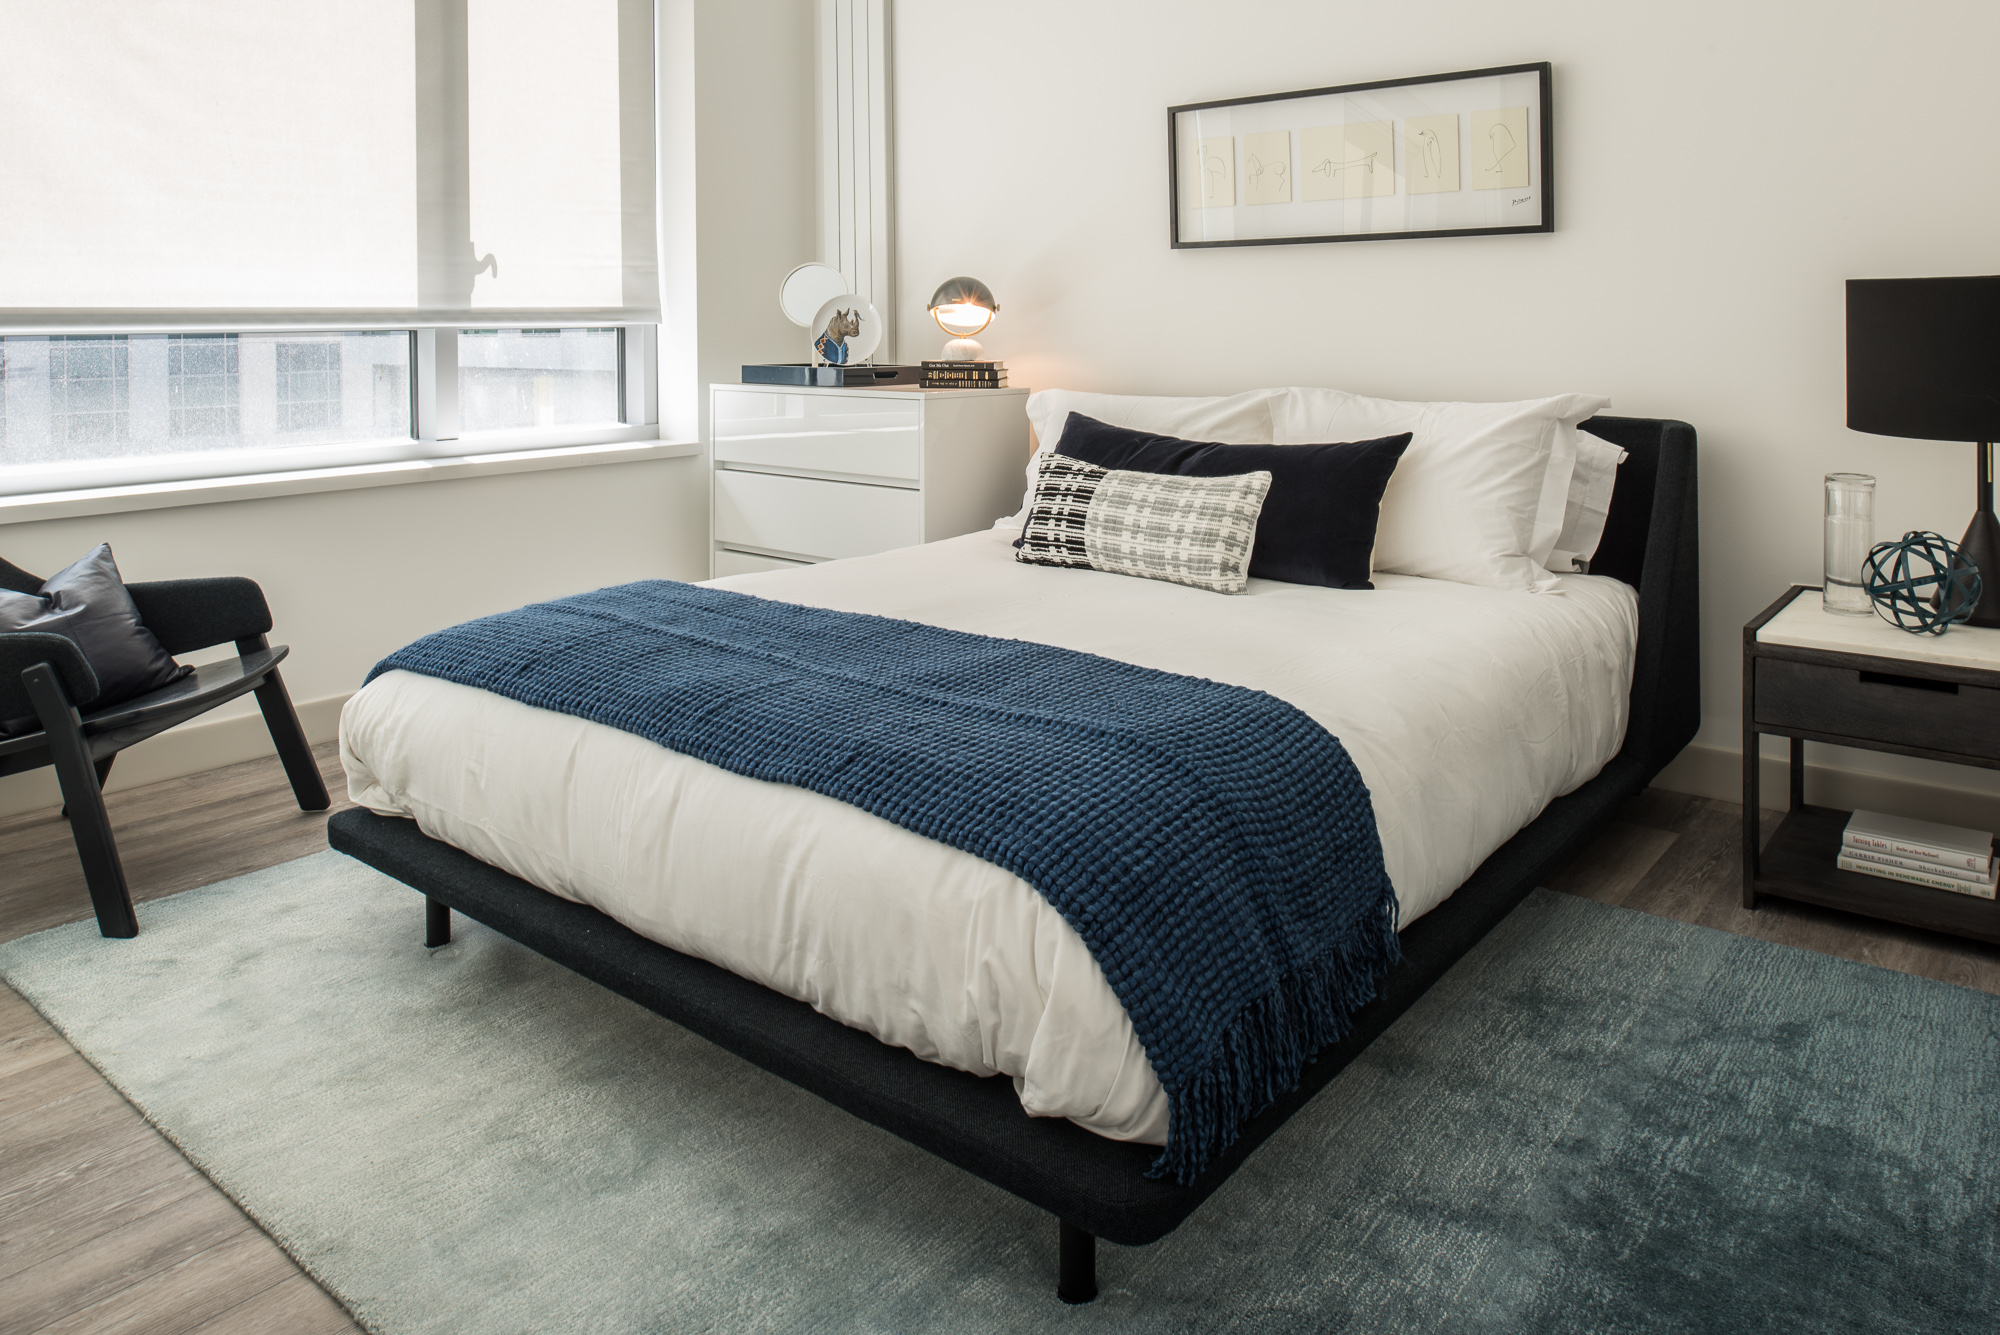 Trinity San Francisco bedroom with black bed and chair, white dresser and bedding, and navy throw blanket